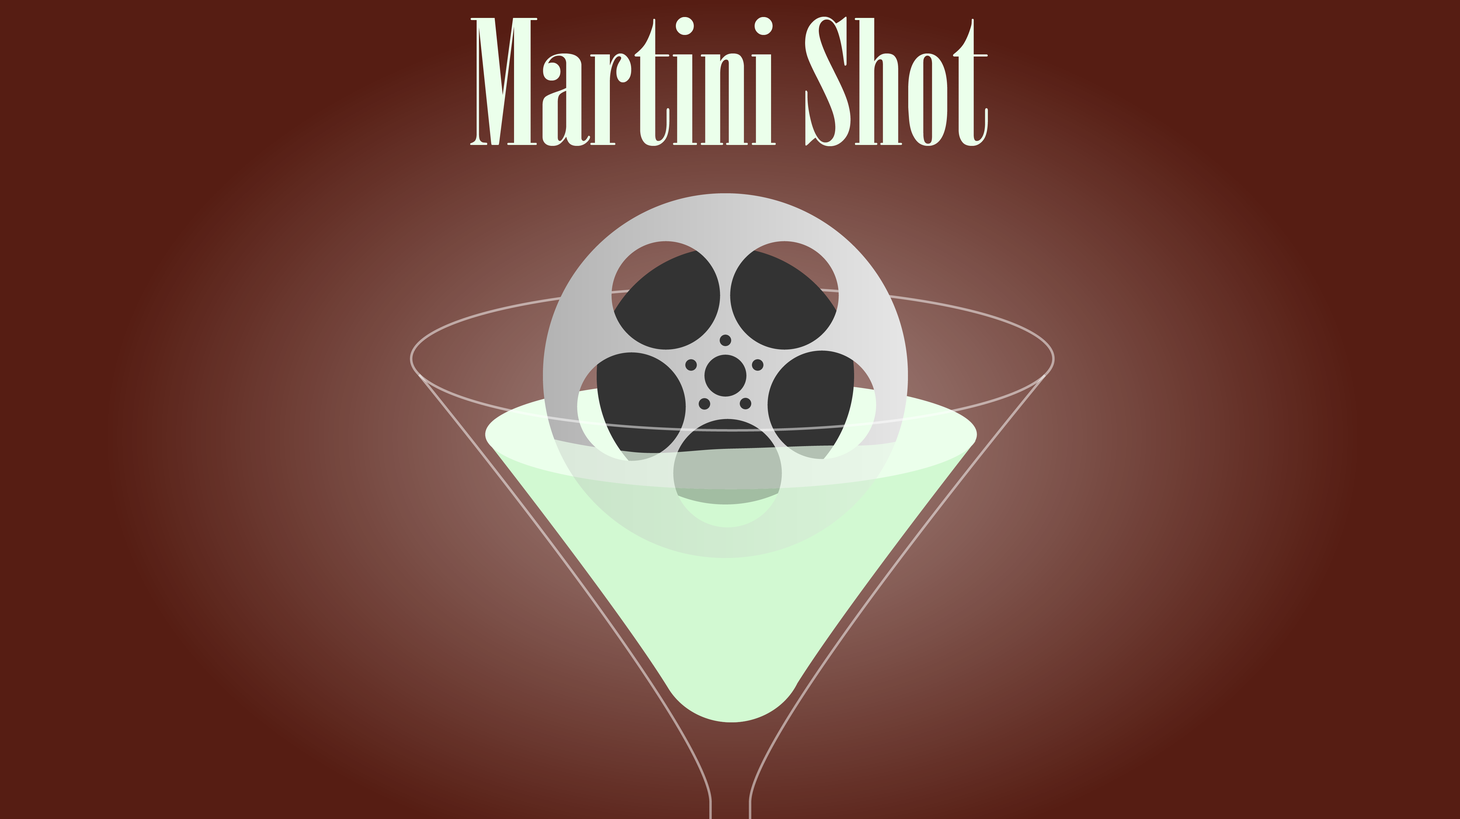 This is Rob Long and on today's Martini Shot I give you the best Christmas gift ever, and ask for the same thing in return: Total digital absolution. You no longer need to keep up with what's on Netflix or Hulu or your Kindle or your inbox.